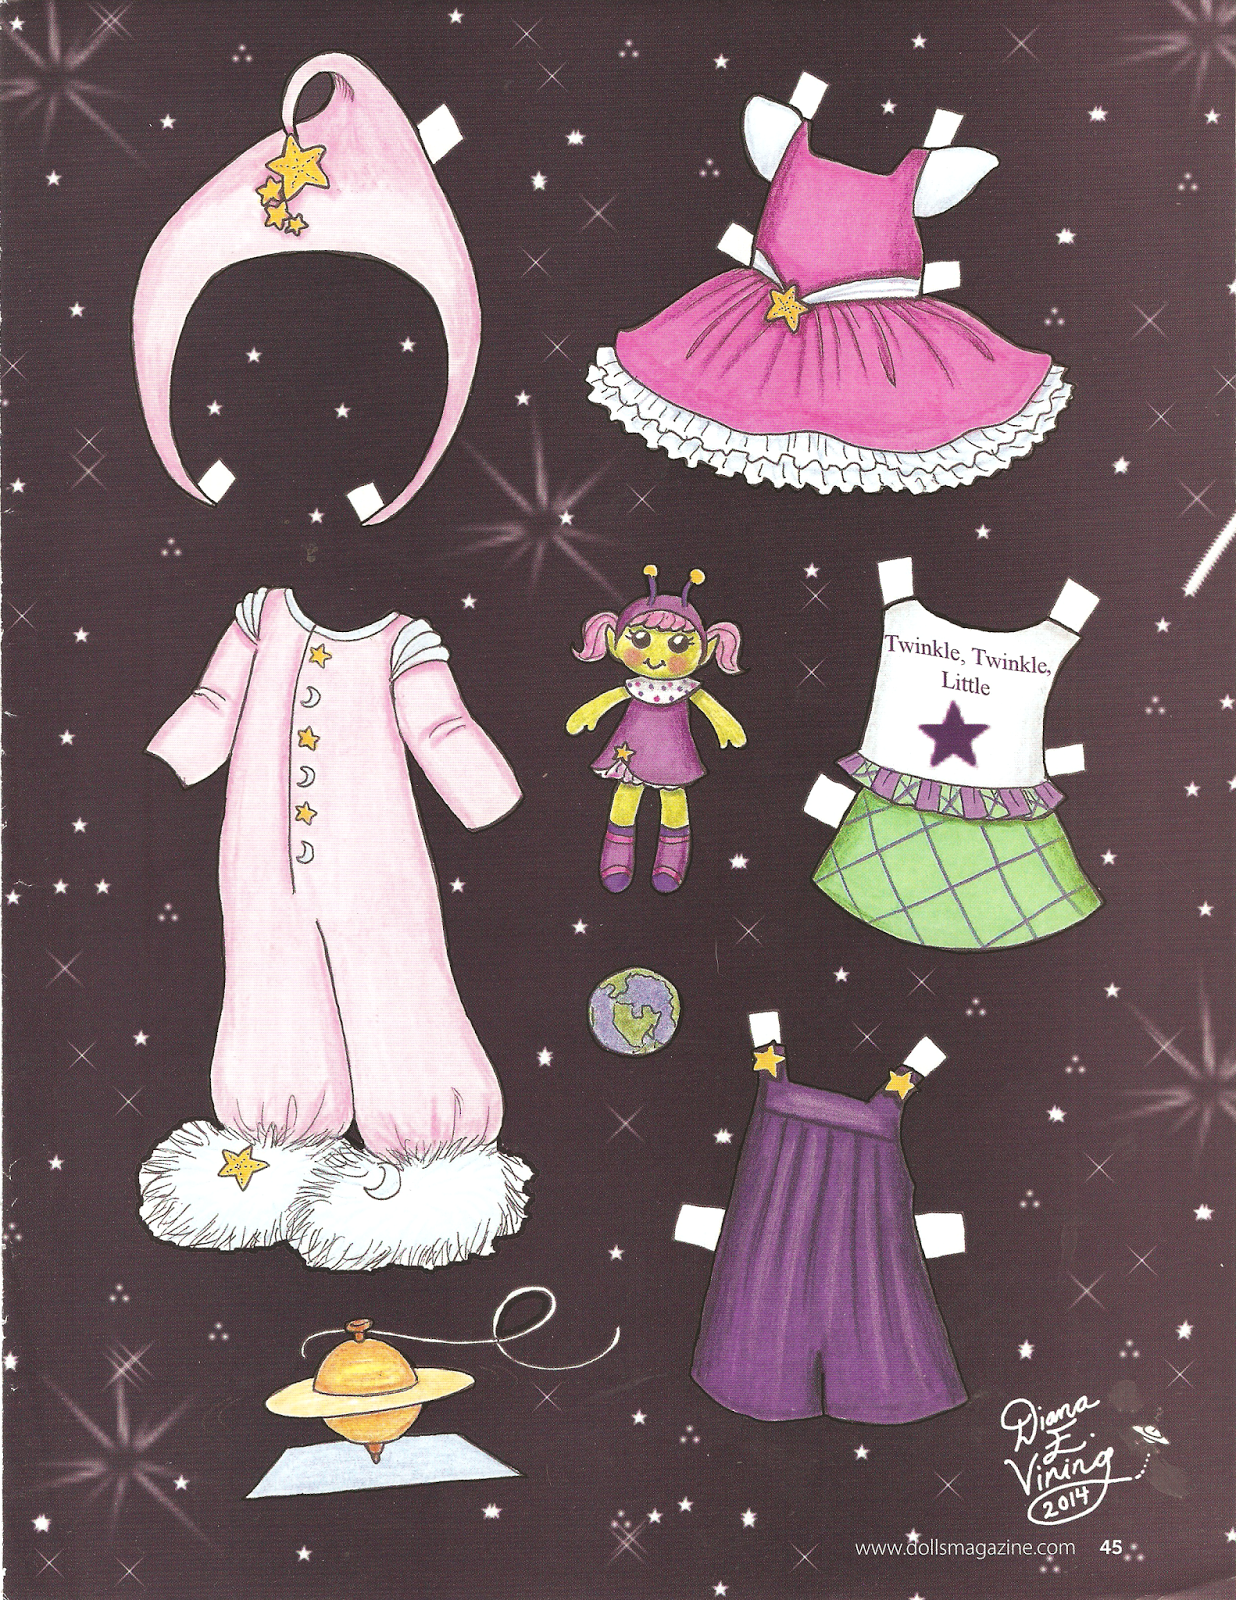 STARDUST Paper Doll from Dolls Magazine, April 2014, by Diana E Vining  2 of 2